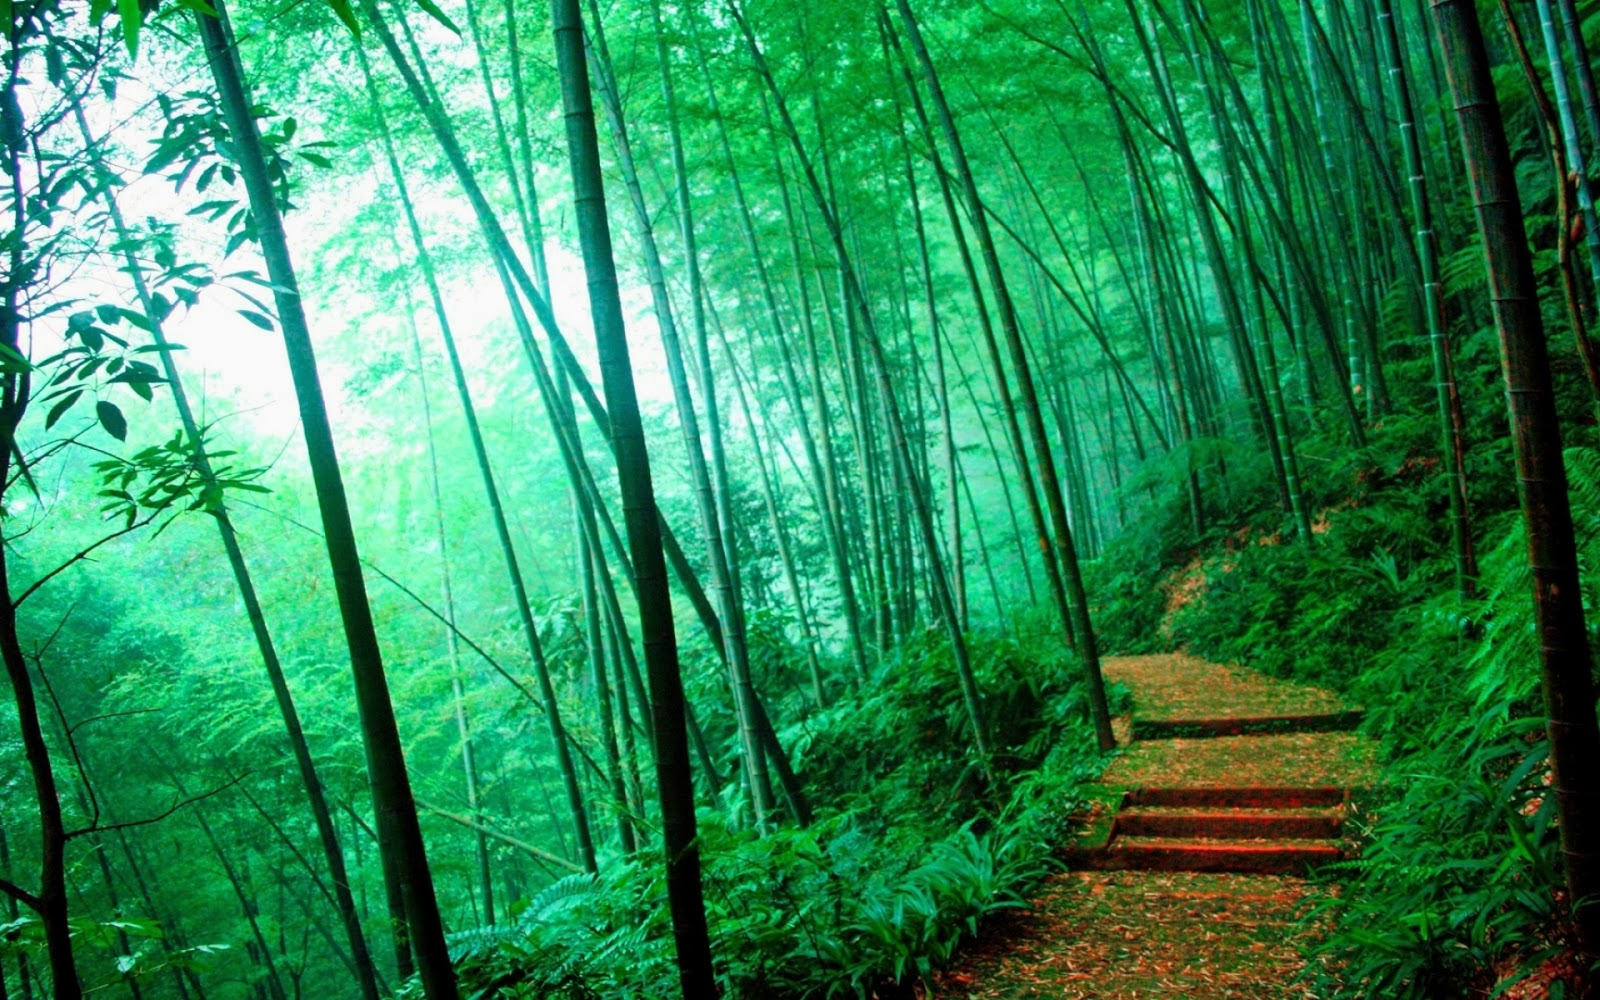 Car In Forrest Hd Wallpaper Bamboo Wallpapers Collections Most Beautiful Places In